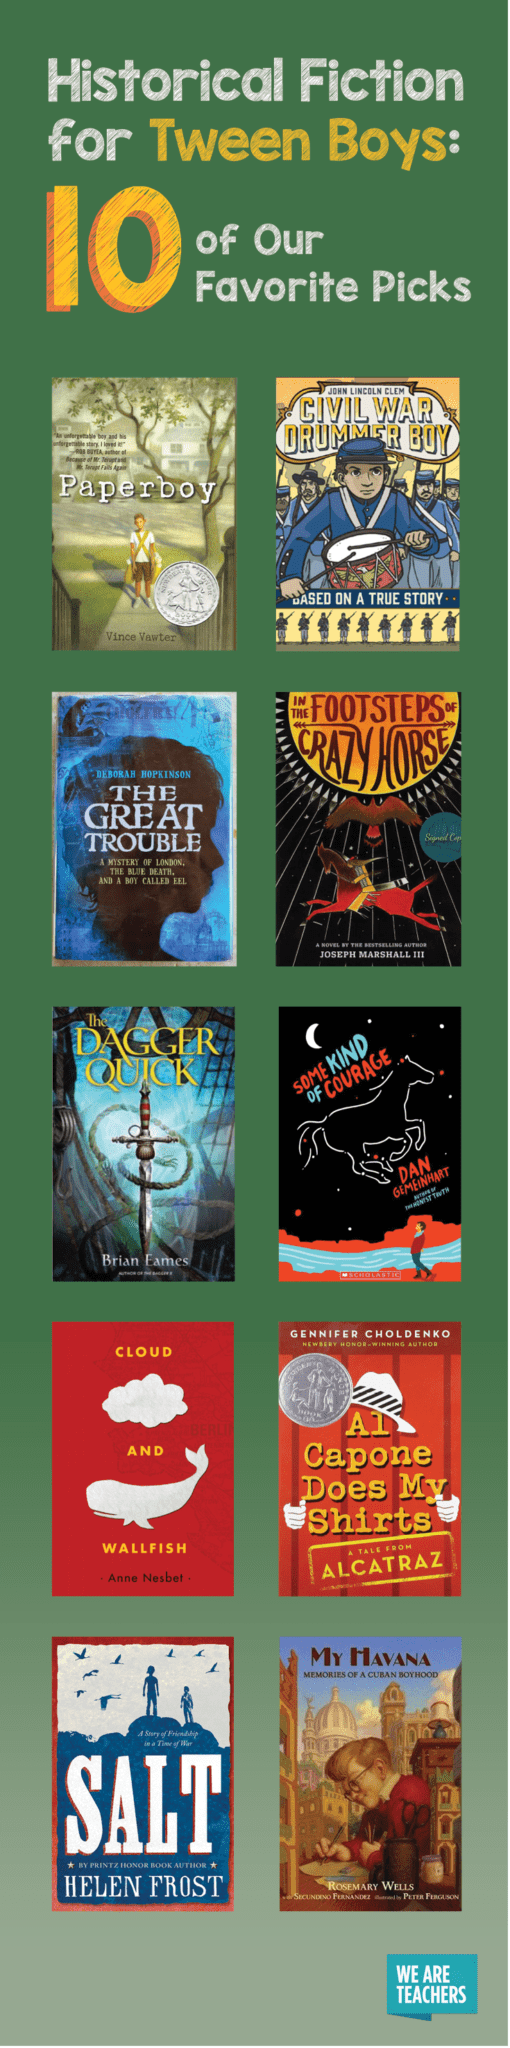 Historical Fiction For Tween Boys Top 10 Picks Weareteachers